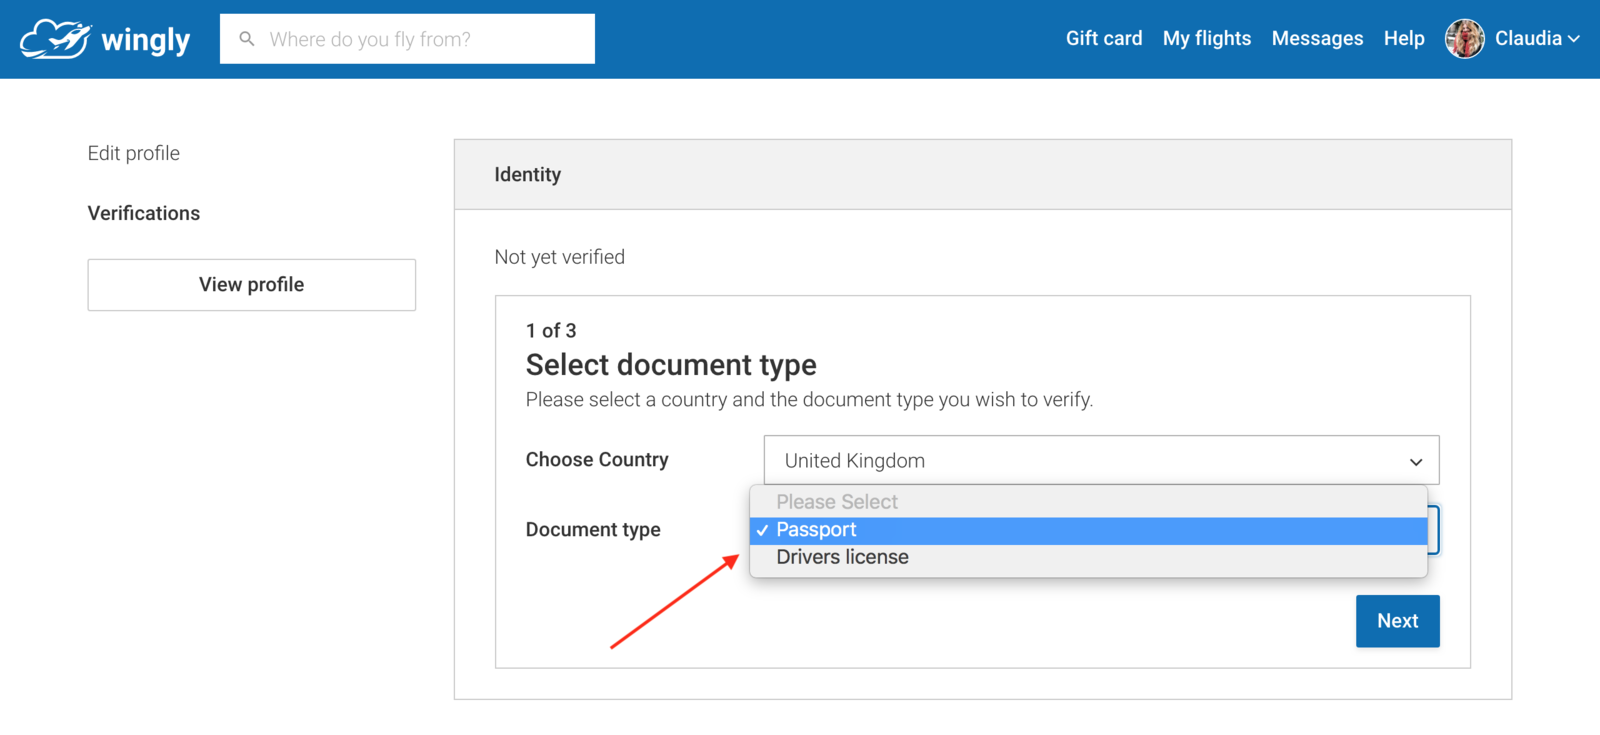 You can choose which document you would like to upload